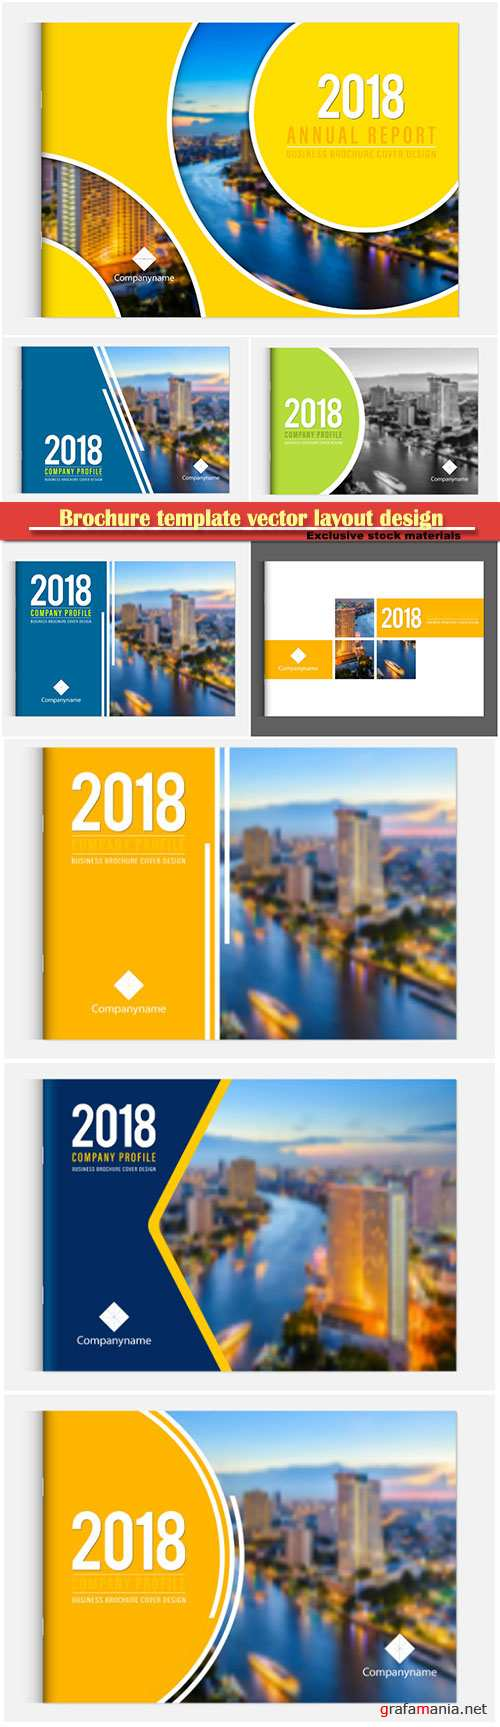 Brochure template vector layout design, corporate business annual report, magazine, flyer mockup # 158